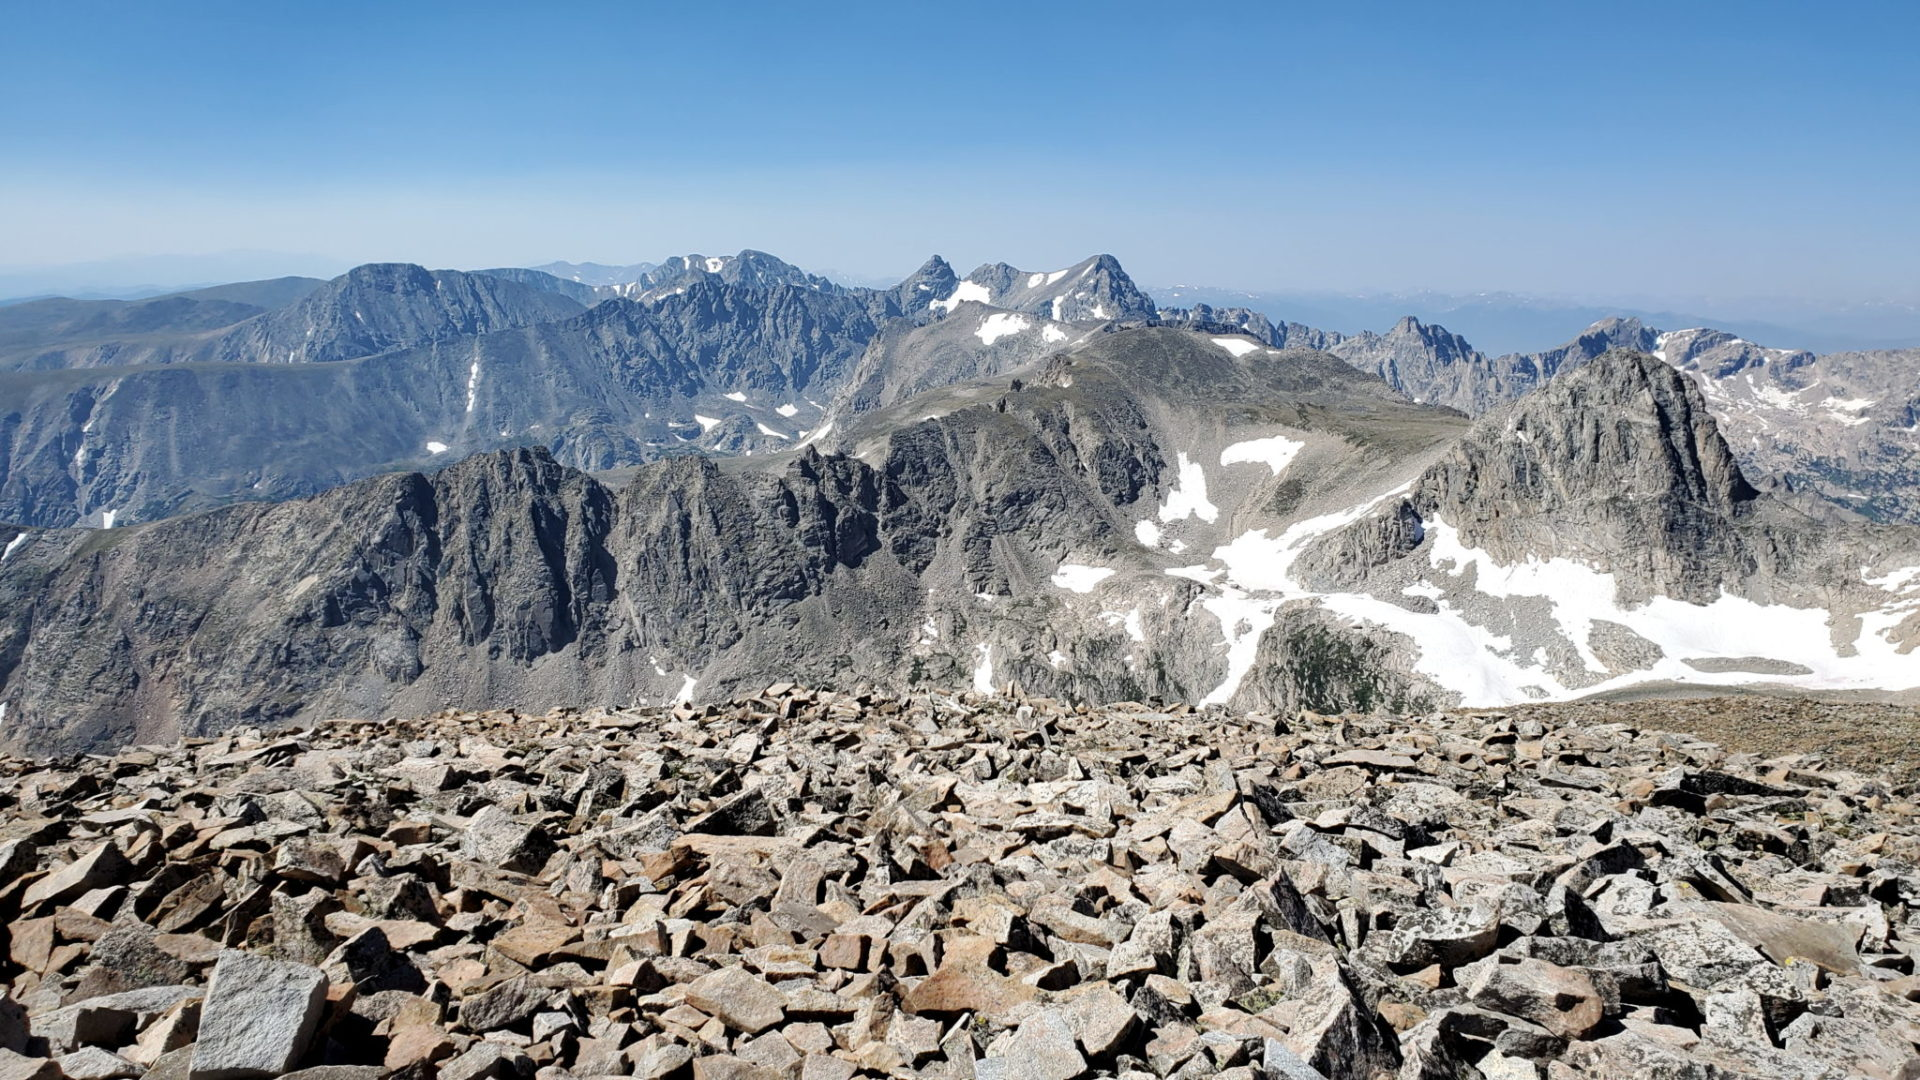 View into the Indian Peaks Wilderness from the summit